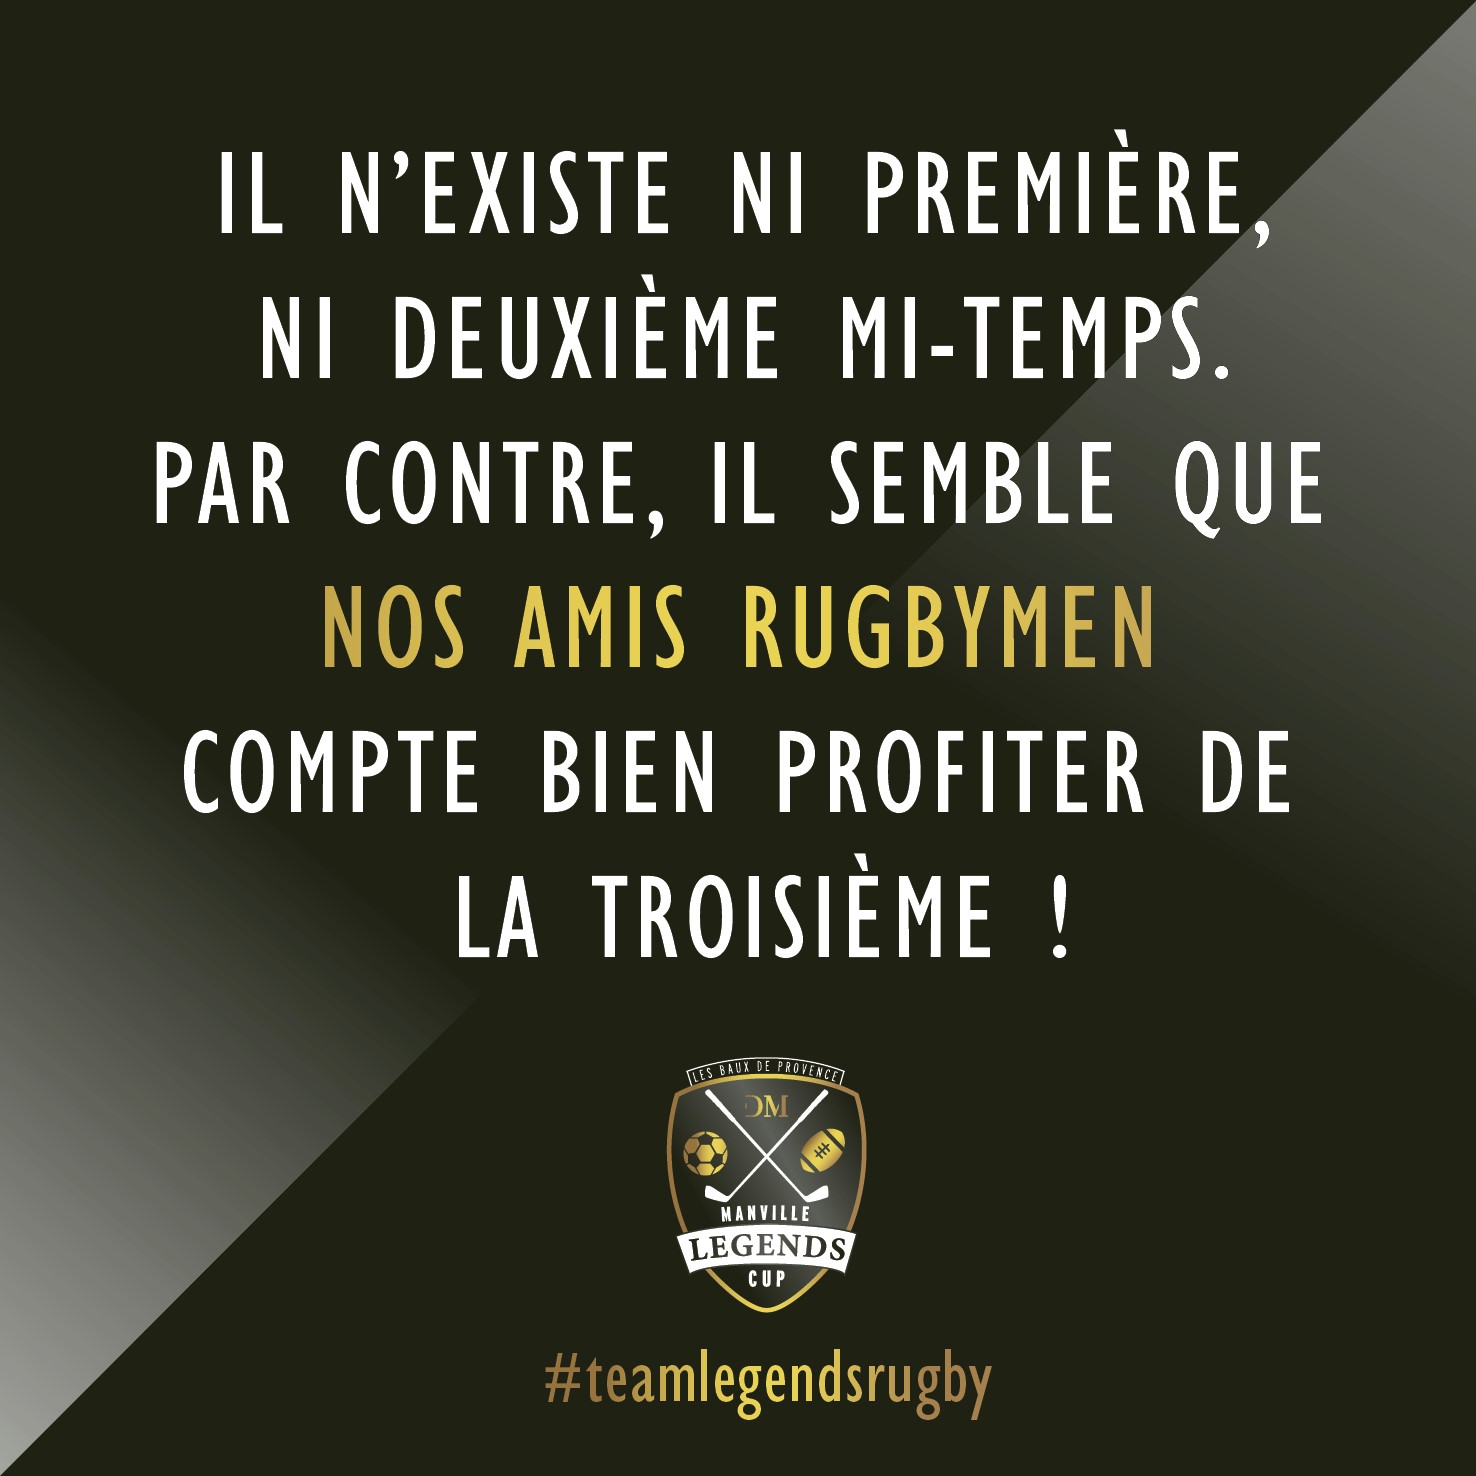 teamrugby-mitemps